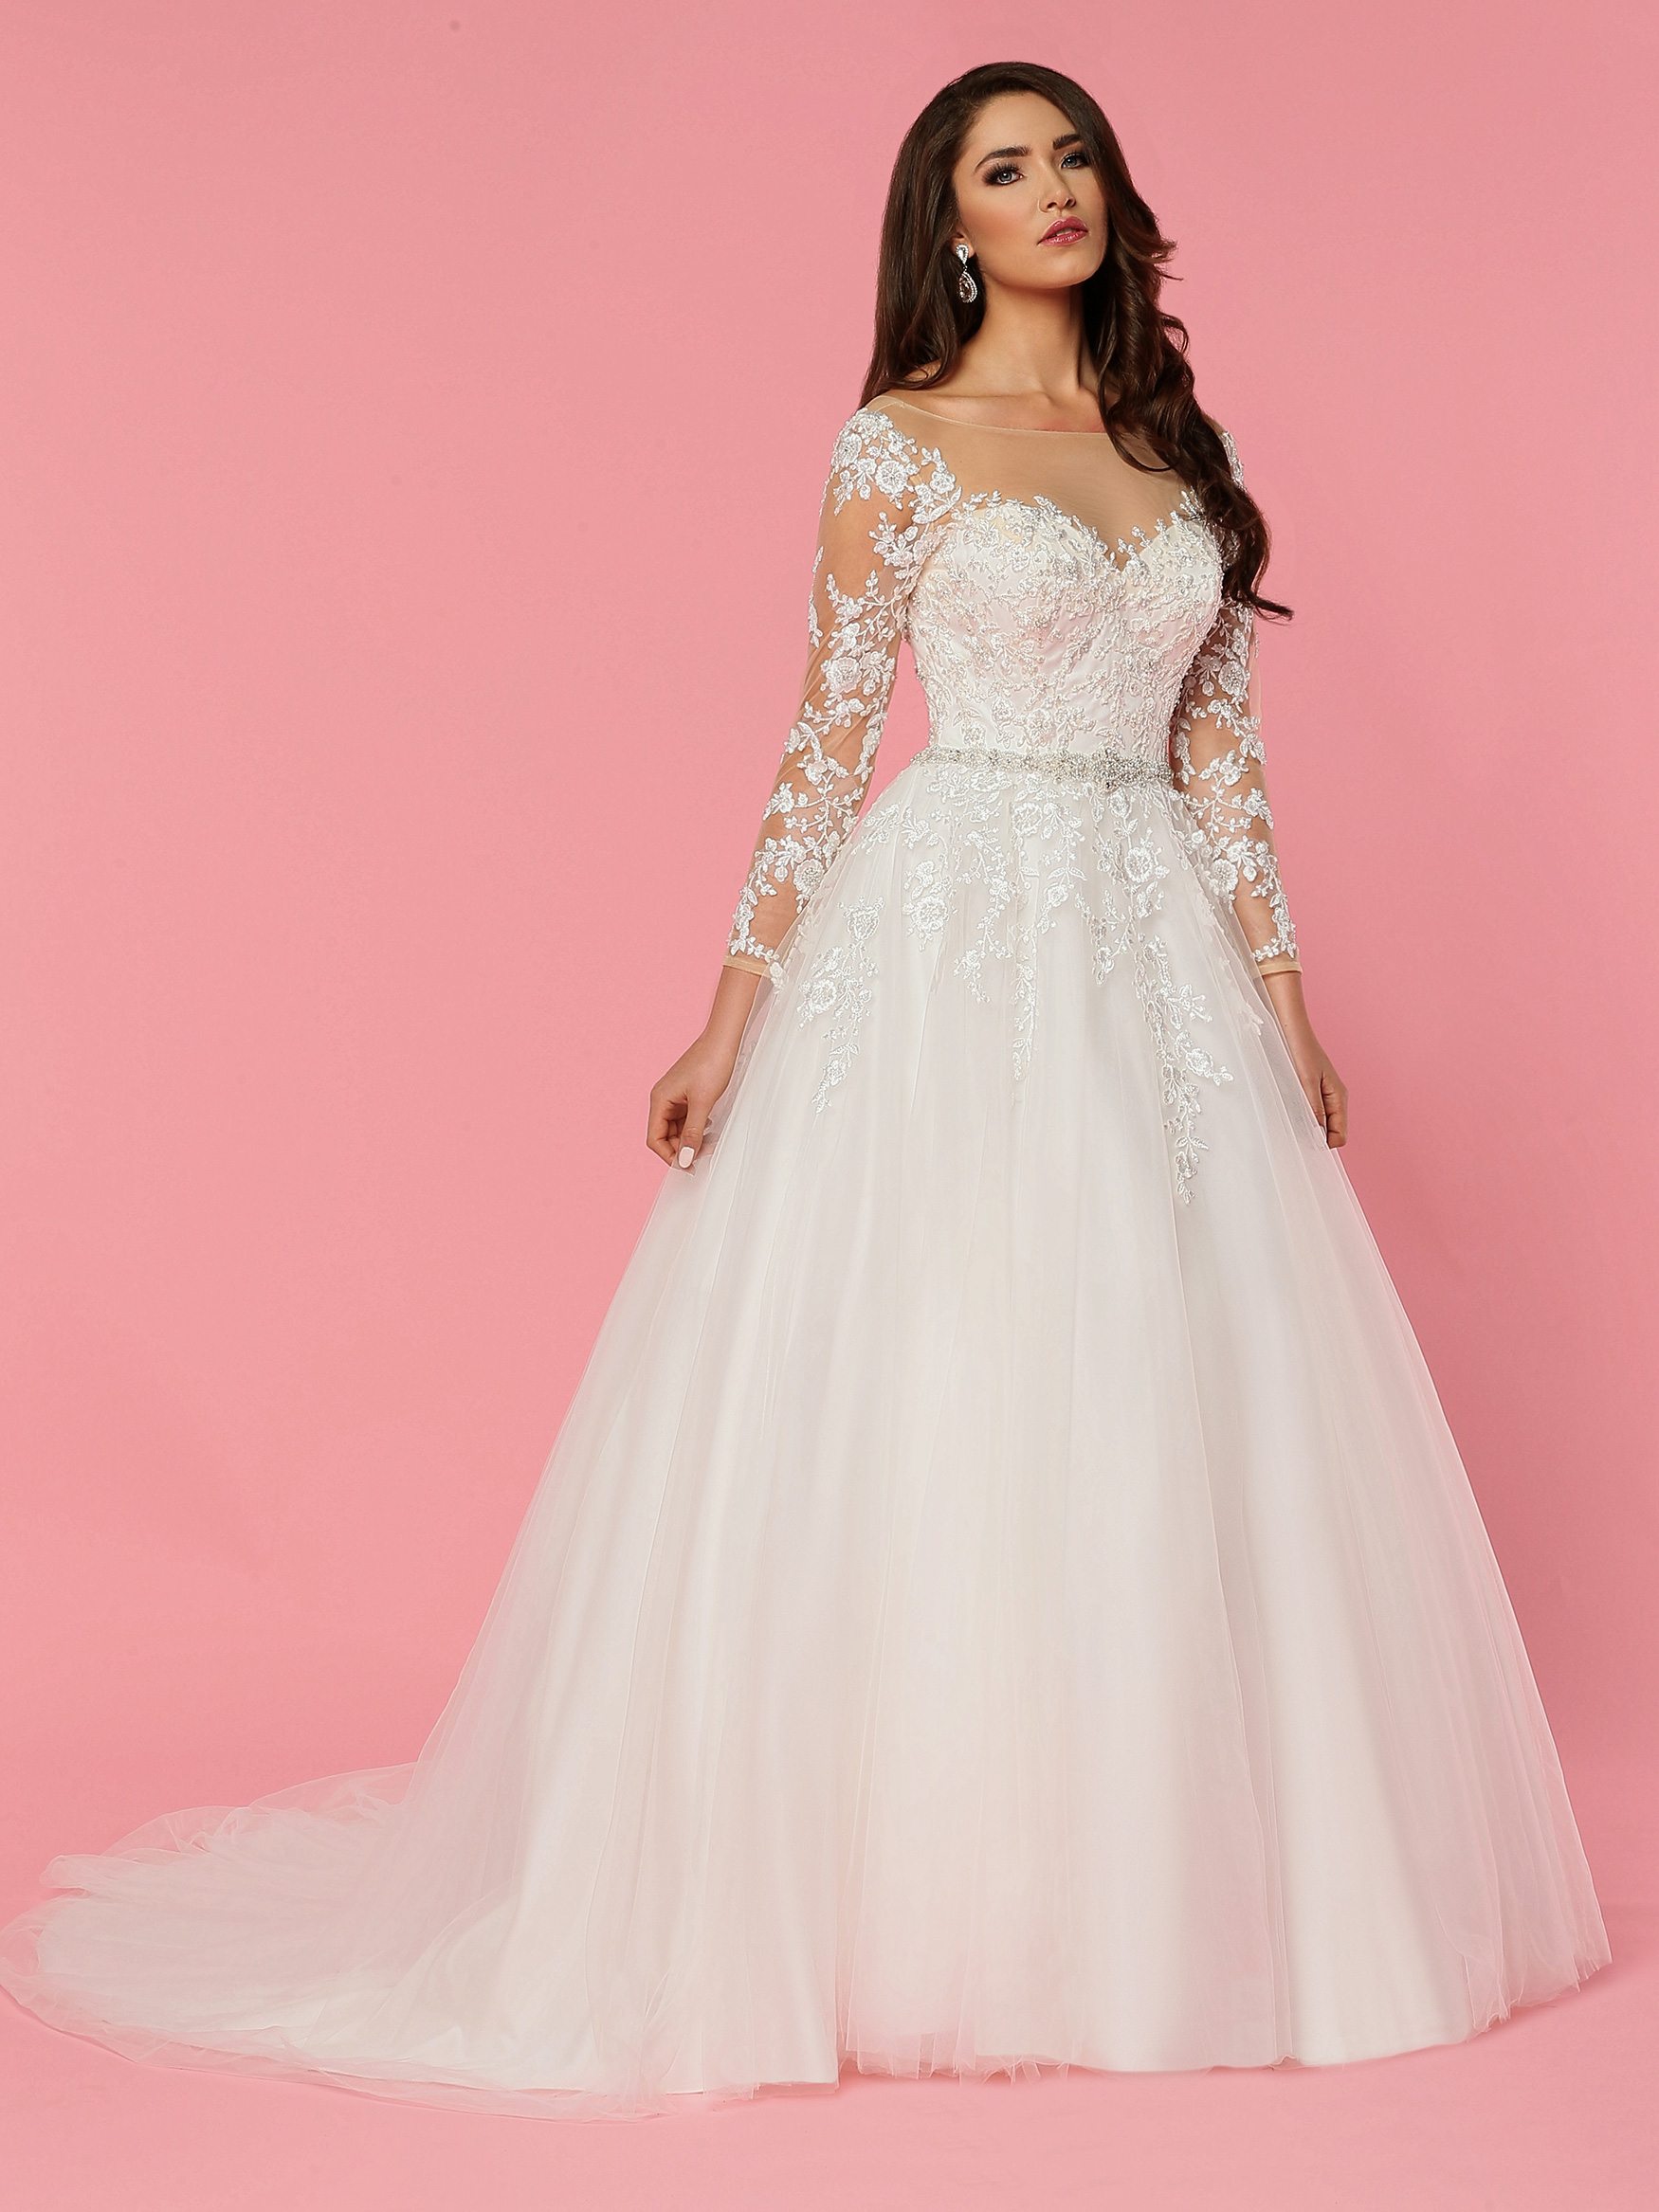 Davinci wedding dresses style 50470 tulle lace davinci davinci wedding dresses style 50470 tulle lace davinci bridal collection ombrellifo Gallery